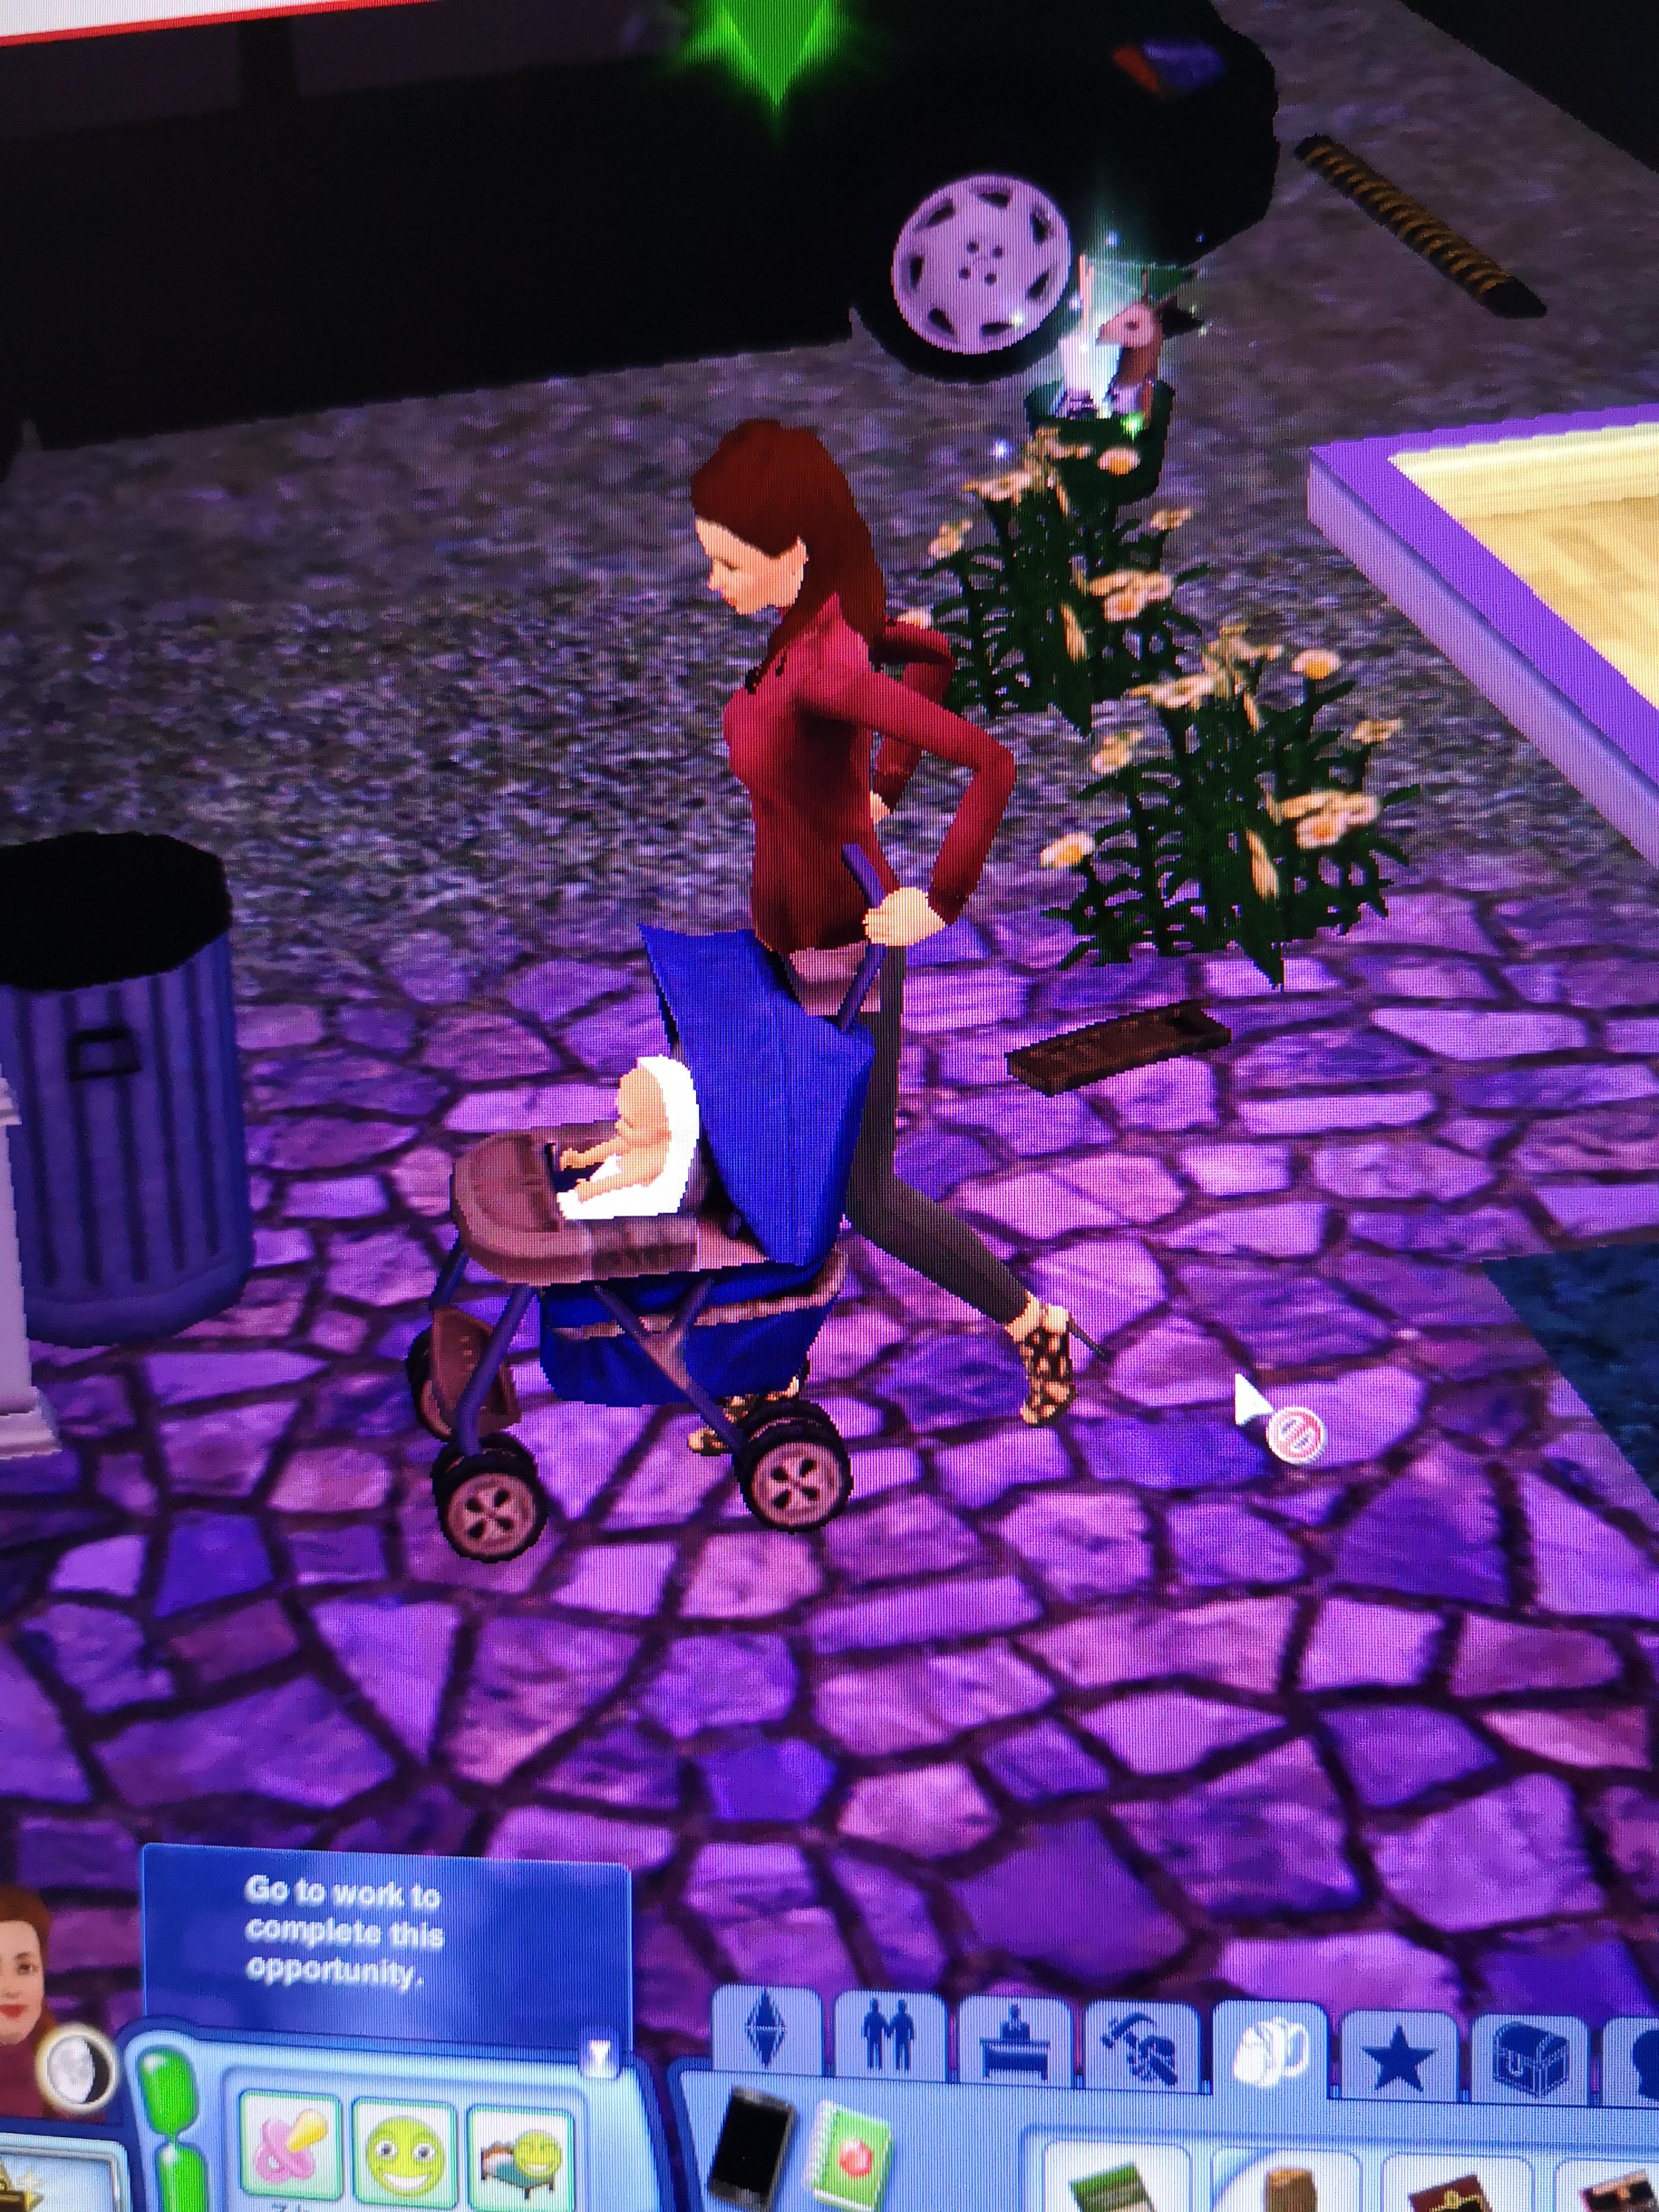 Sims 4 Toddler Stroller Mod What I Love About Sims 3 You Can Do A Lot More With Babies